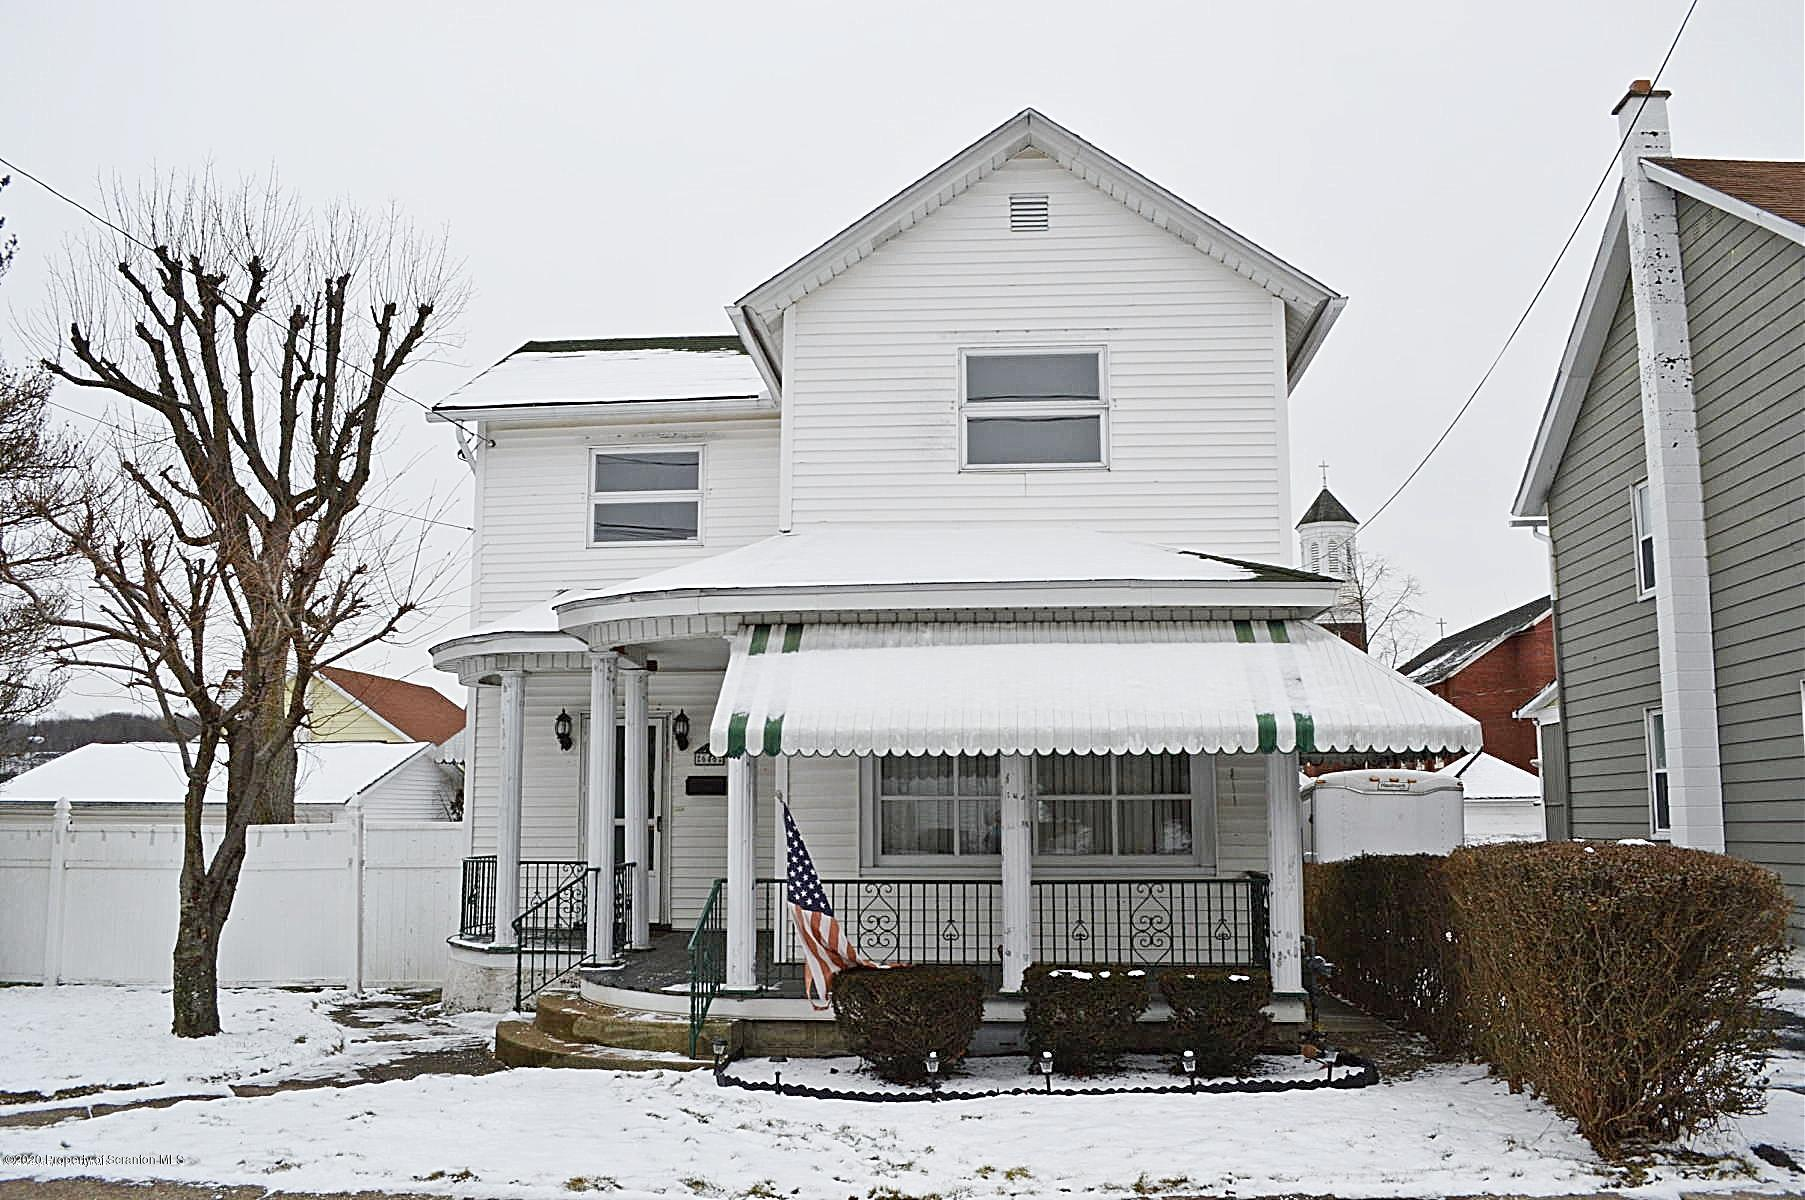 646 Lincoln St, Dickson City, Pennsylvania 18519, 3 Bedrooms Bedrooms, 7 Rooms Rooms,2 BathroomsBathrooms,Single Family,For Sale,Lincoln,20-284